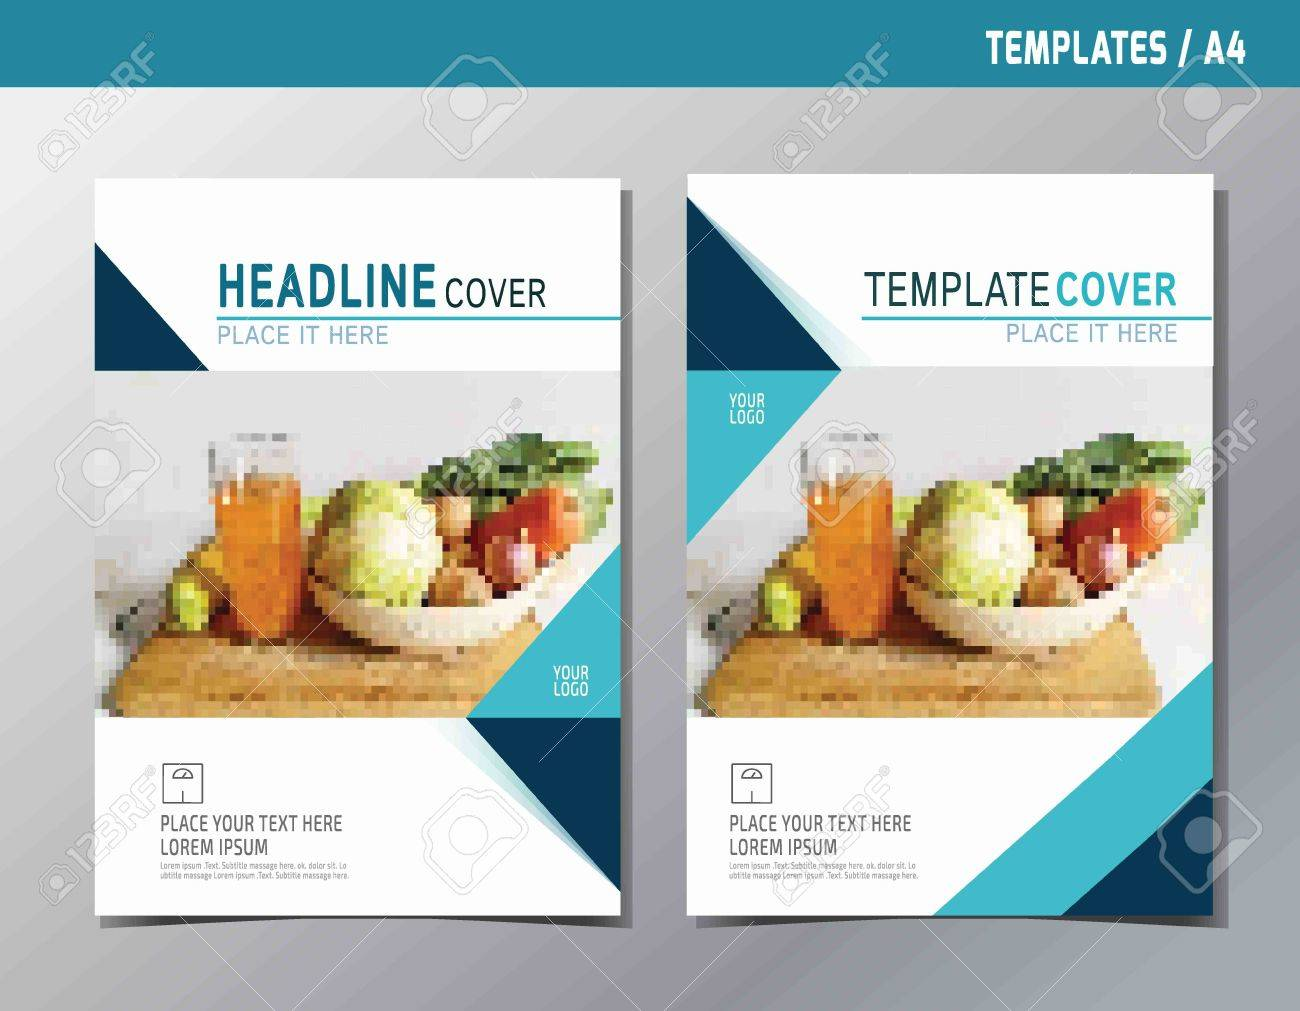 flyer leaflet brochure template A4 size design.abstract flat vector modern multipurpose style.annual report book cover layout. - 56491071